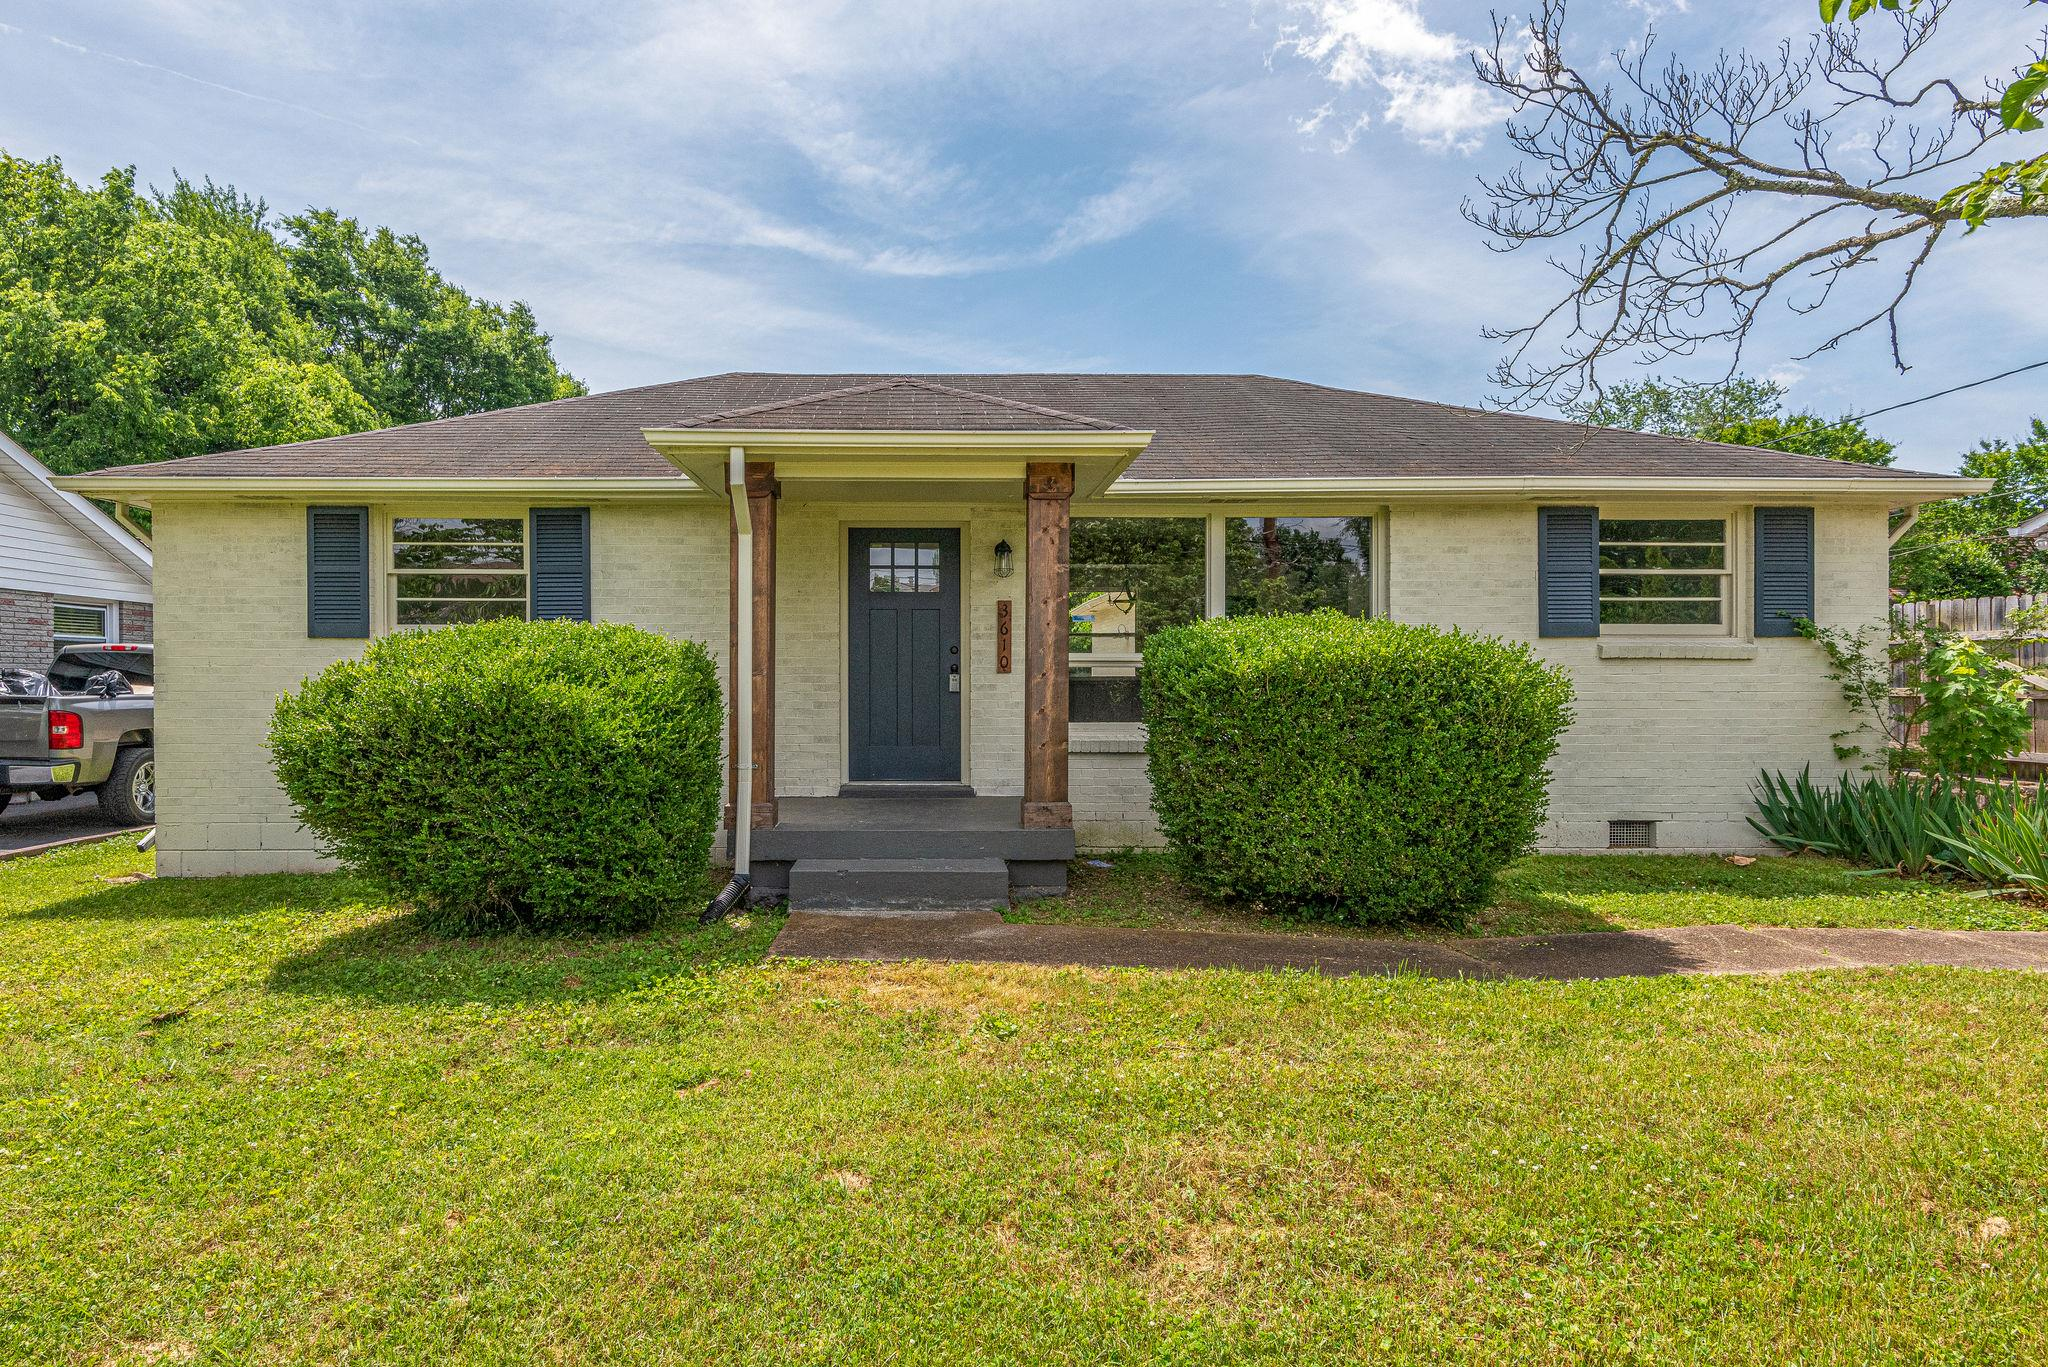 3610 Golf St, Nashville, TN 37216 - Nashville, TN real estate listing